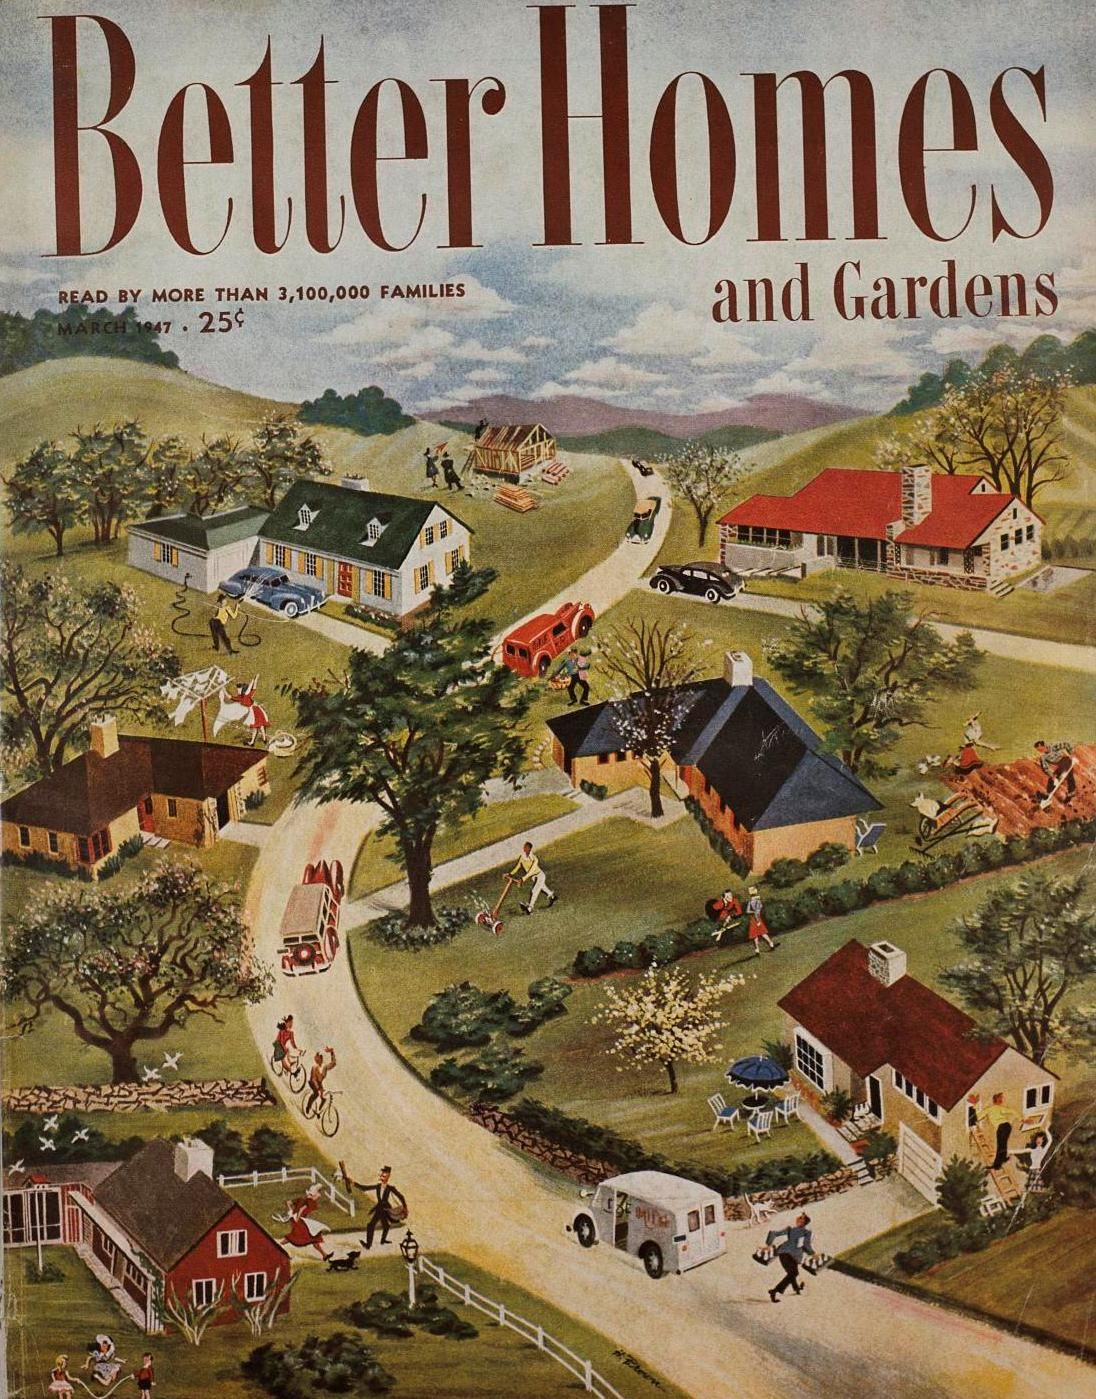 Vintage bhg covers march1947 a special memory for me since this is the issue my mother would Better homes and gardens march